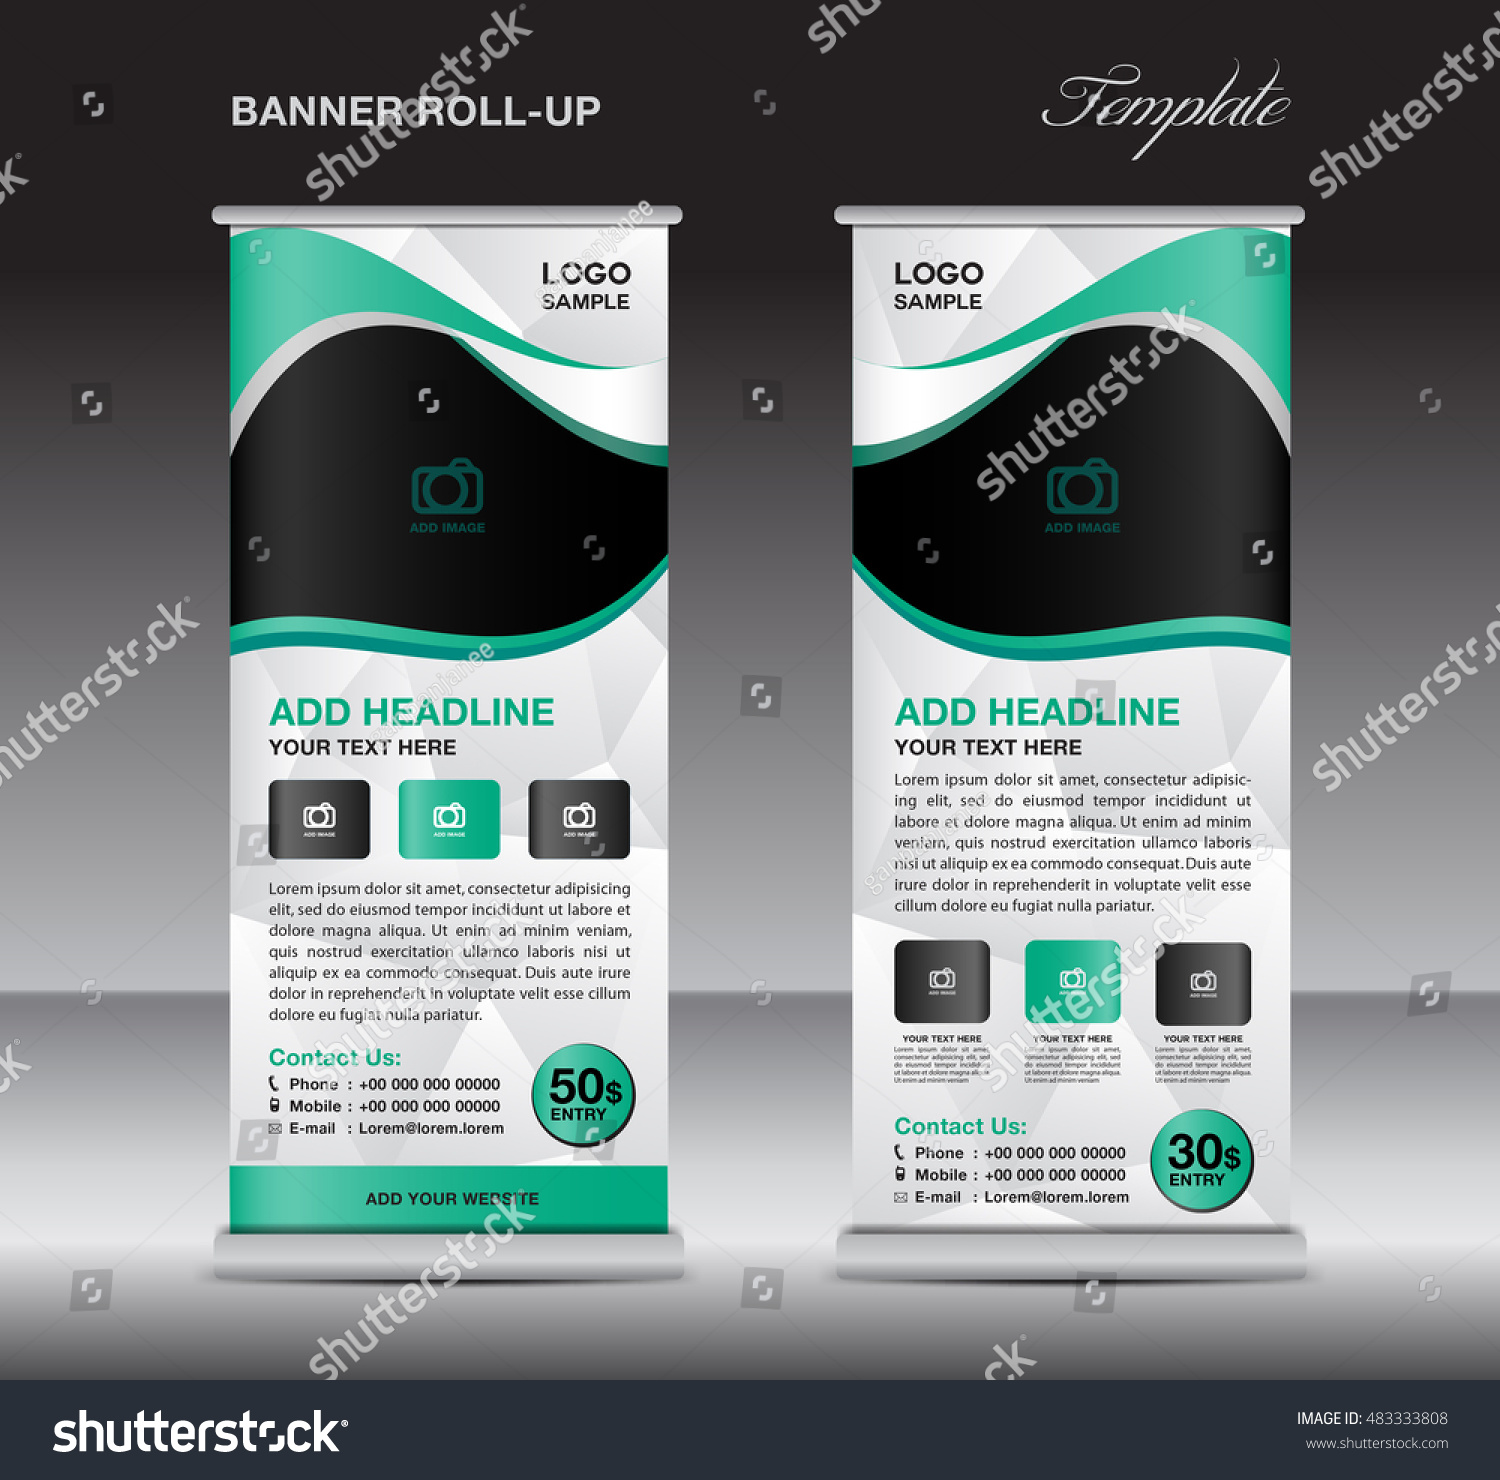 green roll up banner stand template stand design banner design green roll up banner stand template stand design banner design pull up